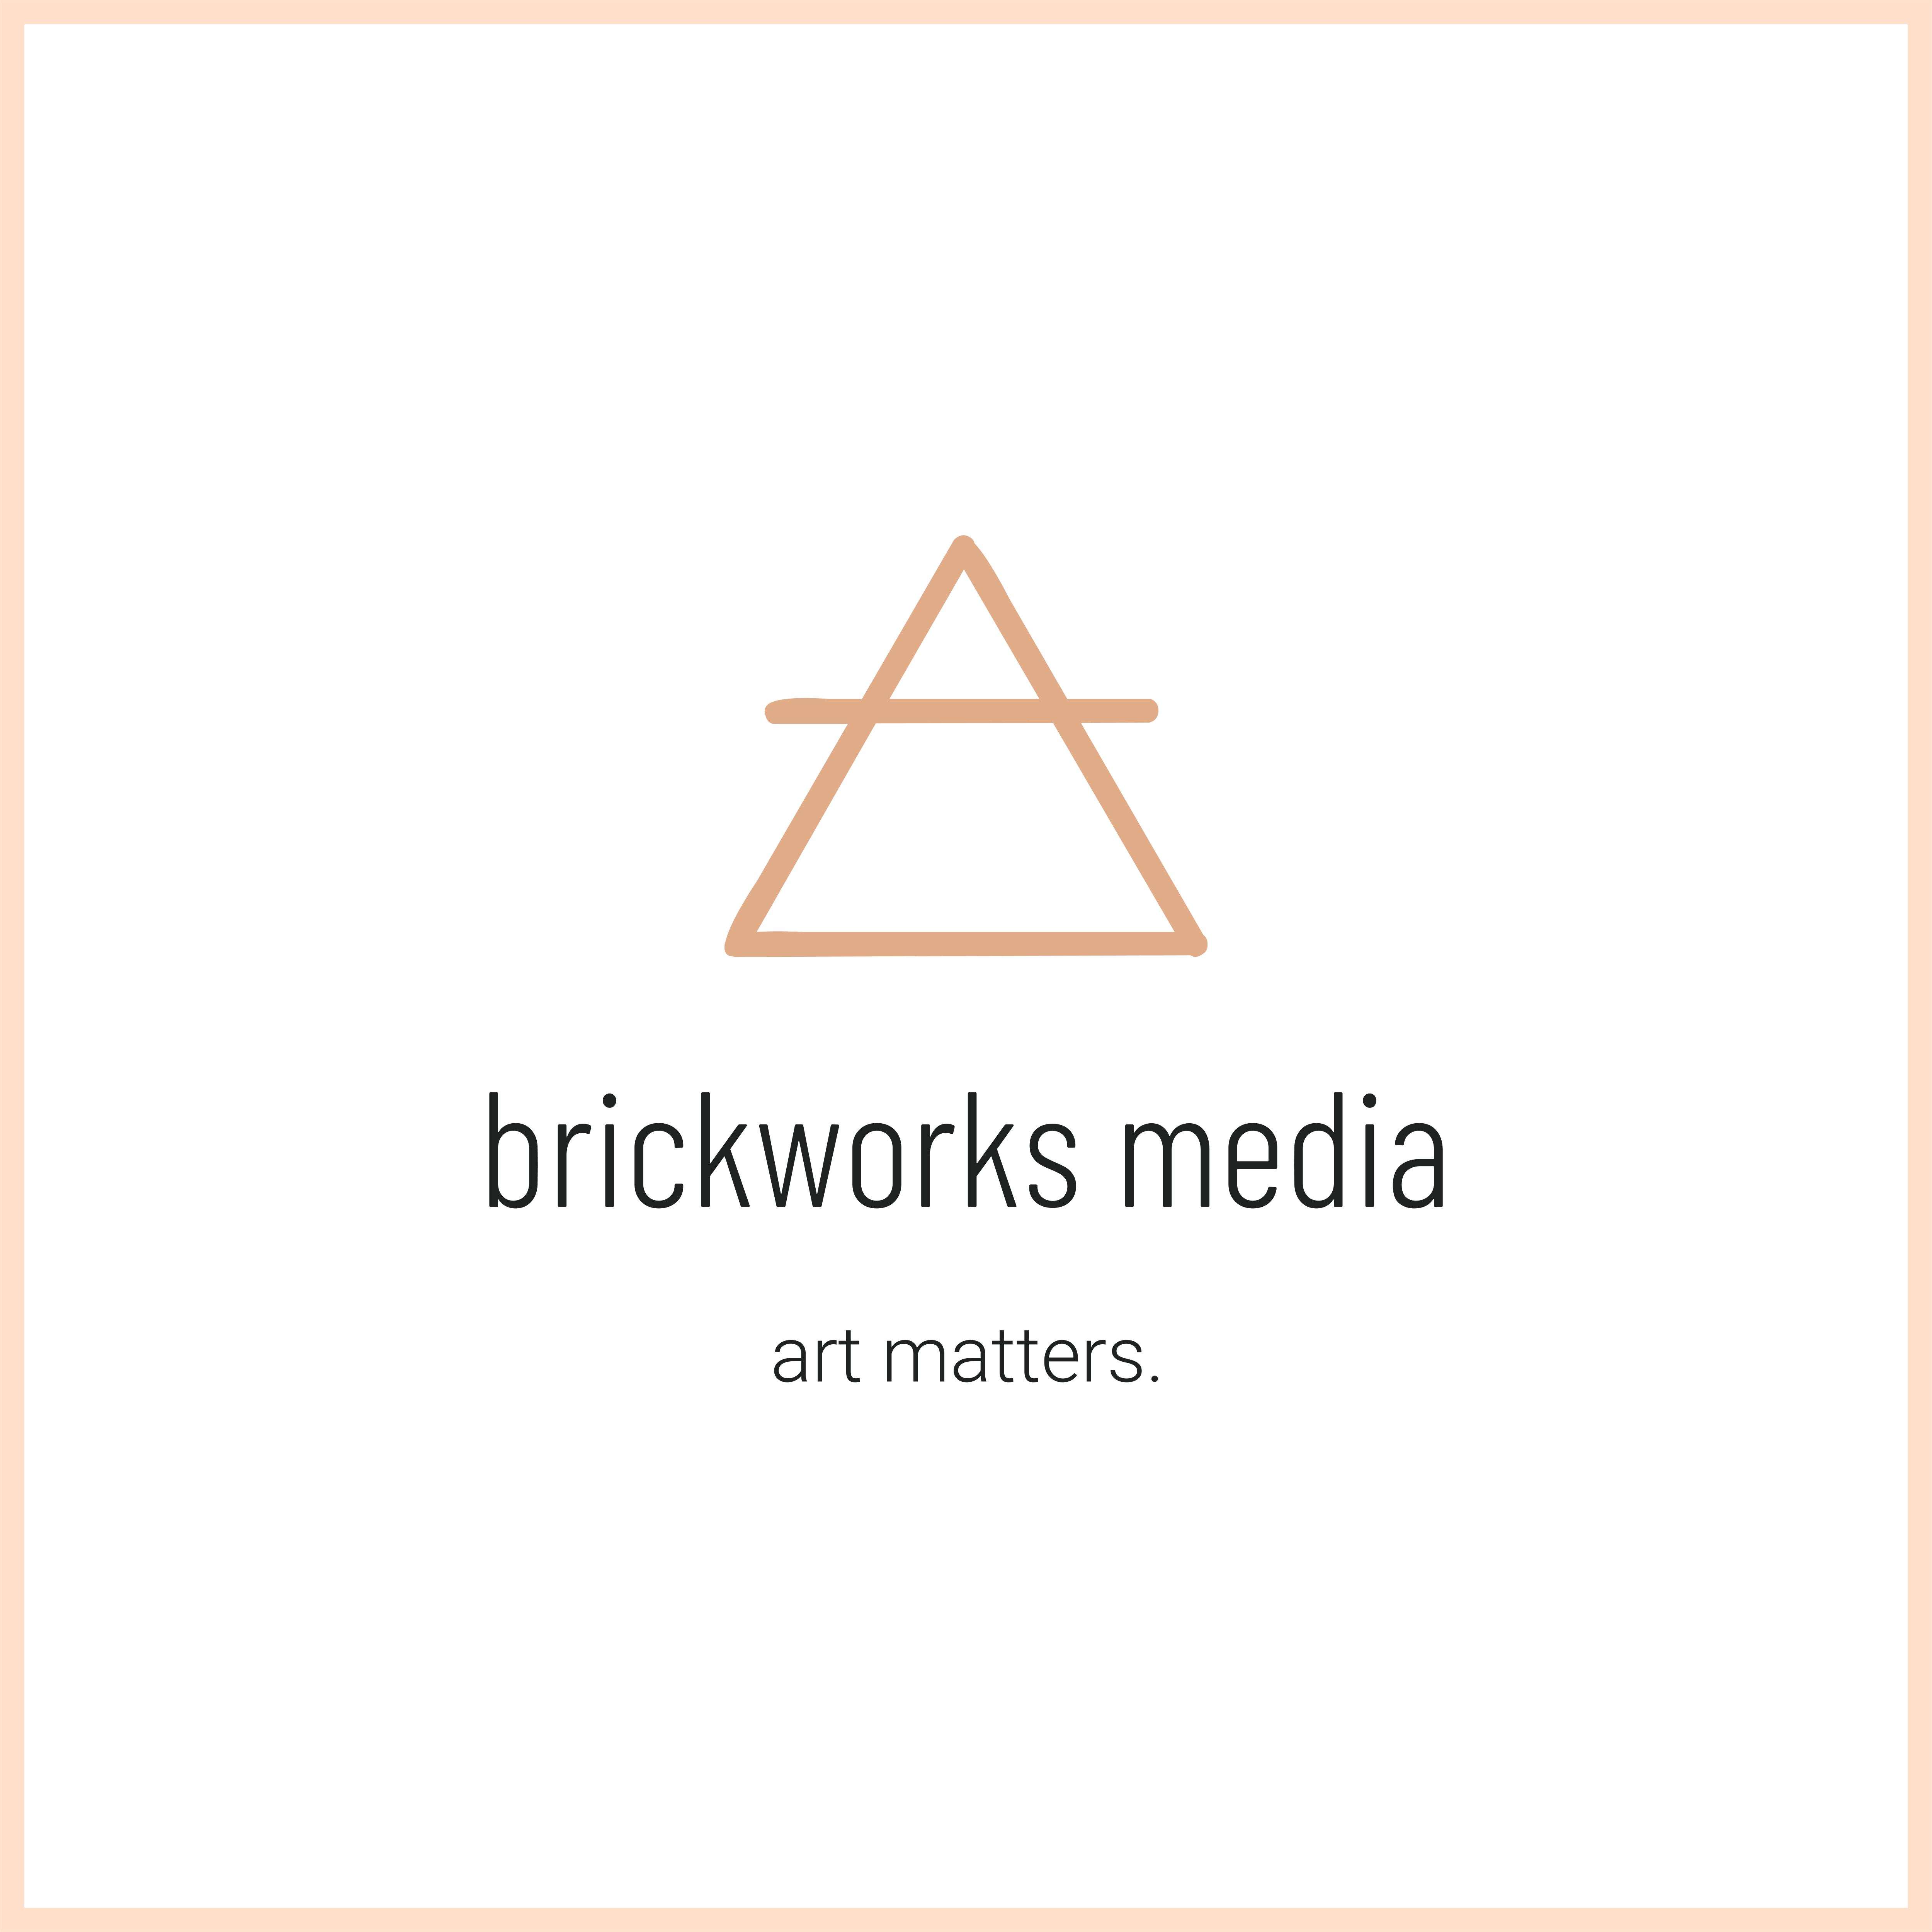 brickworks media